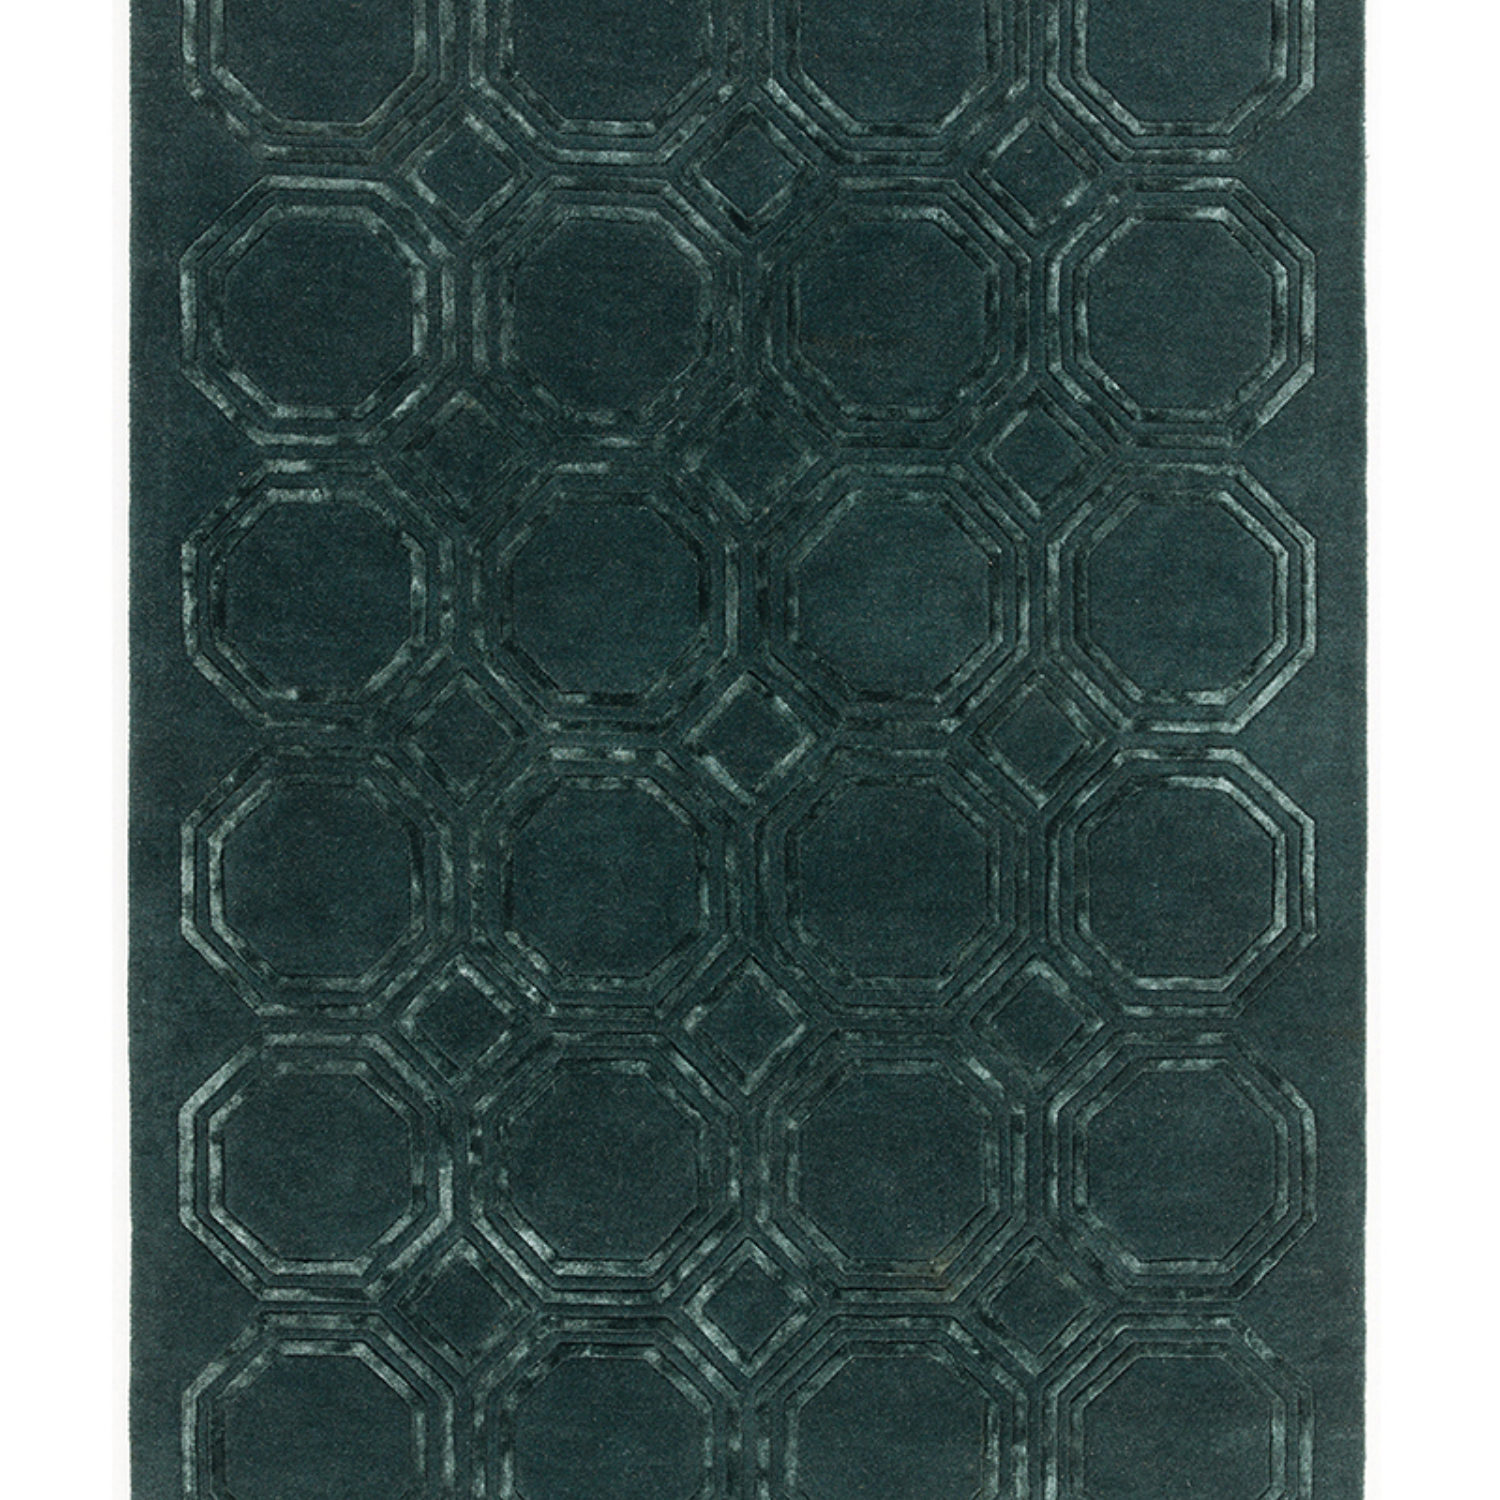 Prenium quality hand tufted rug in precise hand carved geometric designs